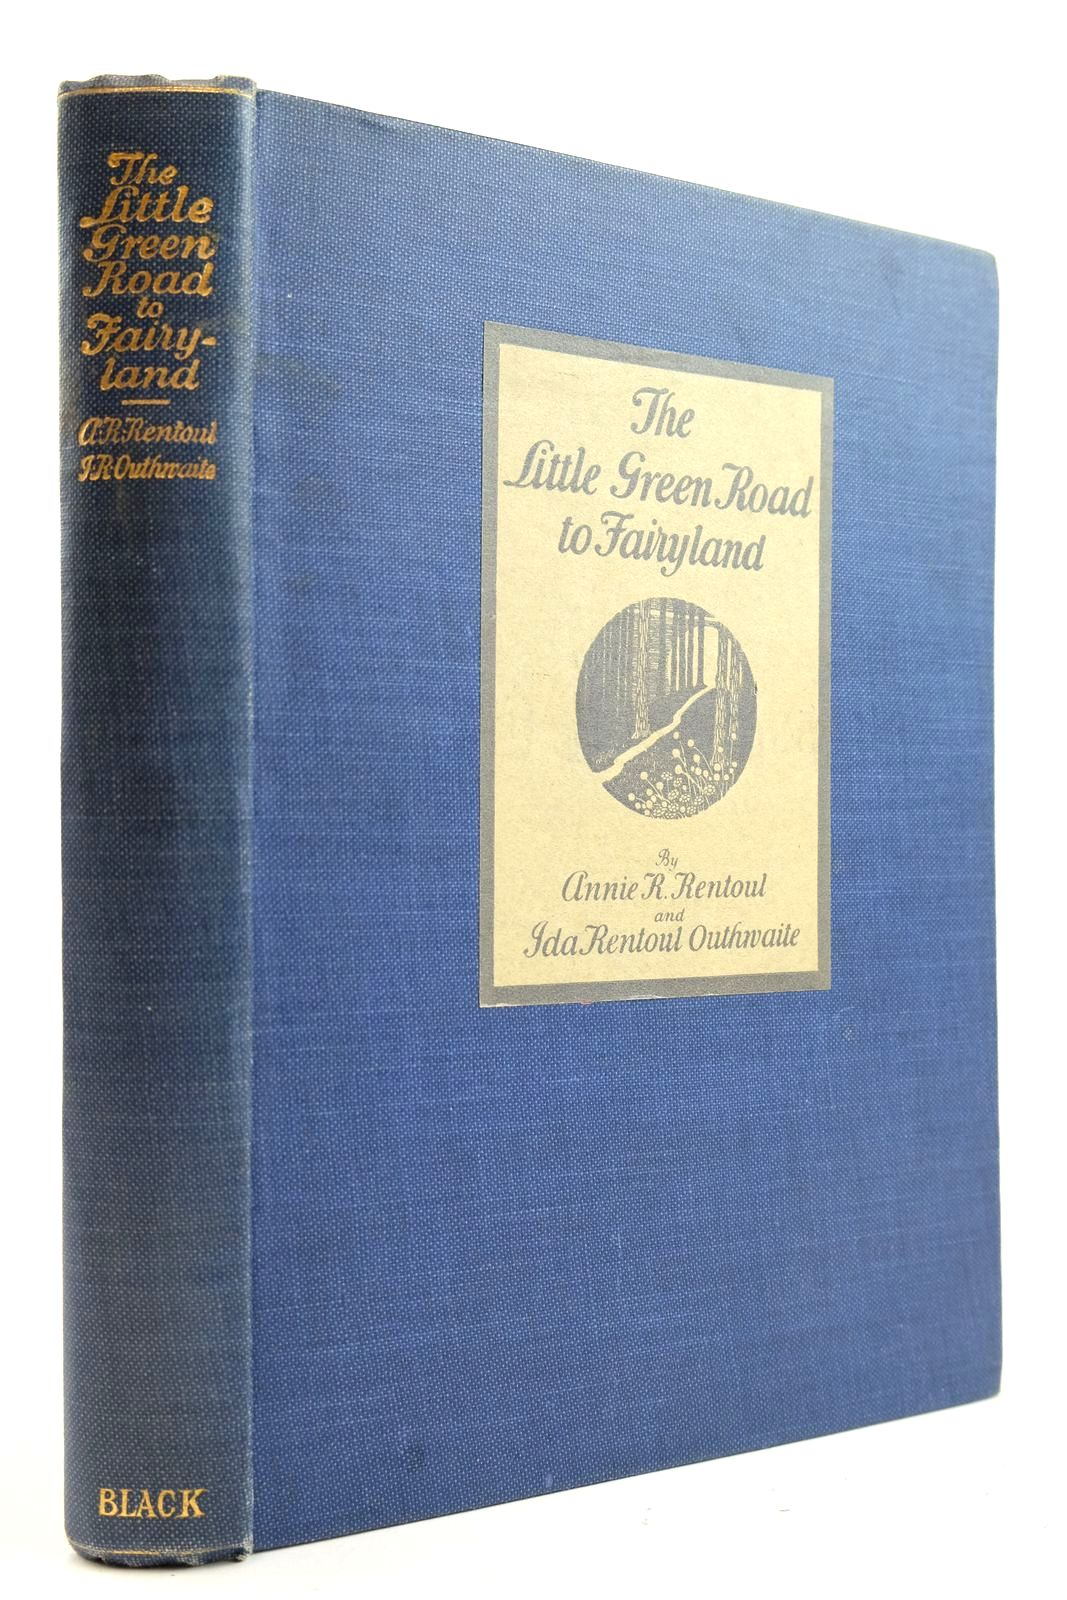 Photo of THE LITTLE GREEN ROAD TO FAIRYLAND written by Rentoul, Annie R. illustrated by Outhwaite, Ida Rentoul published by A. & C. Black Ltd. (STOCK CODE: 2132992)  for sale by Stella & Rose's Books